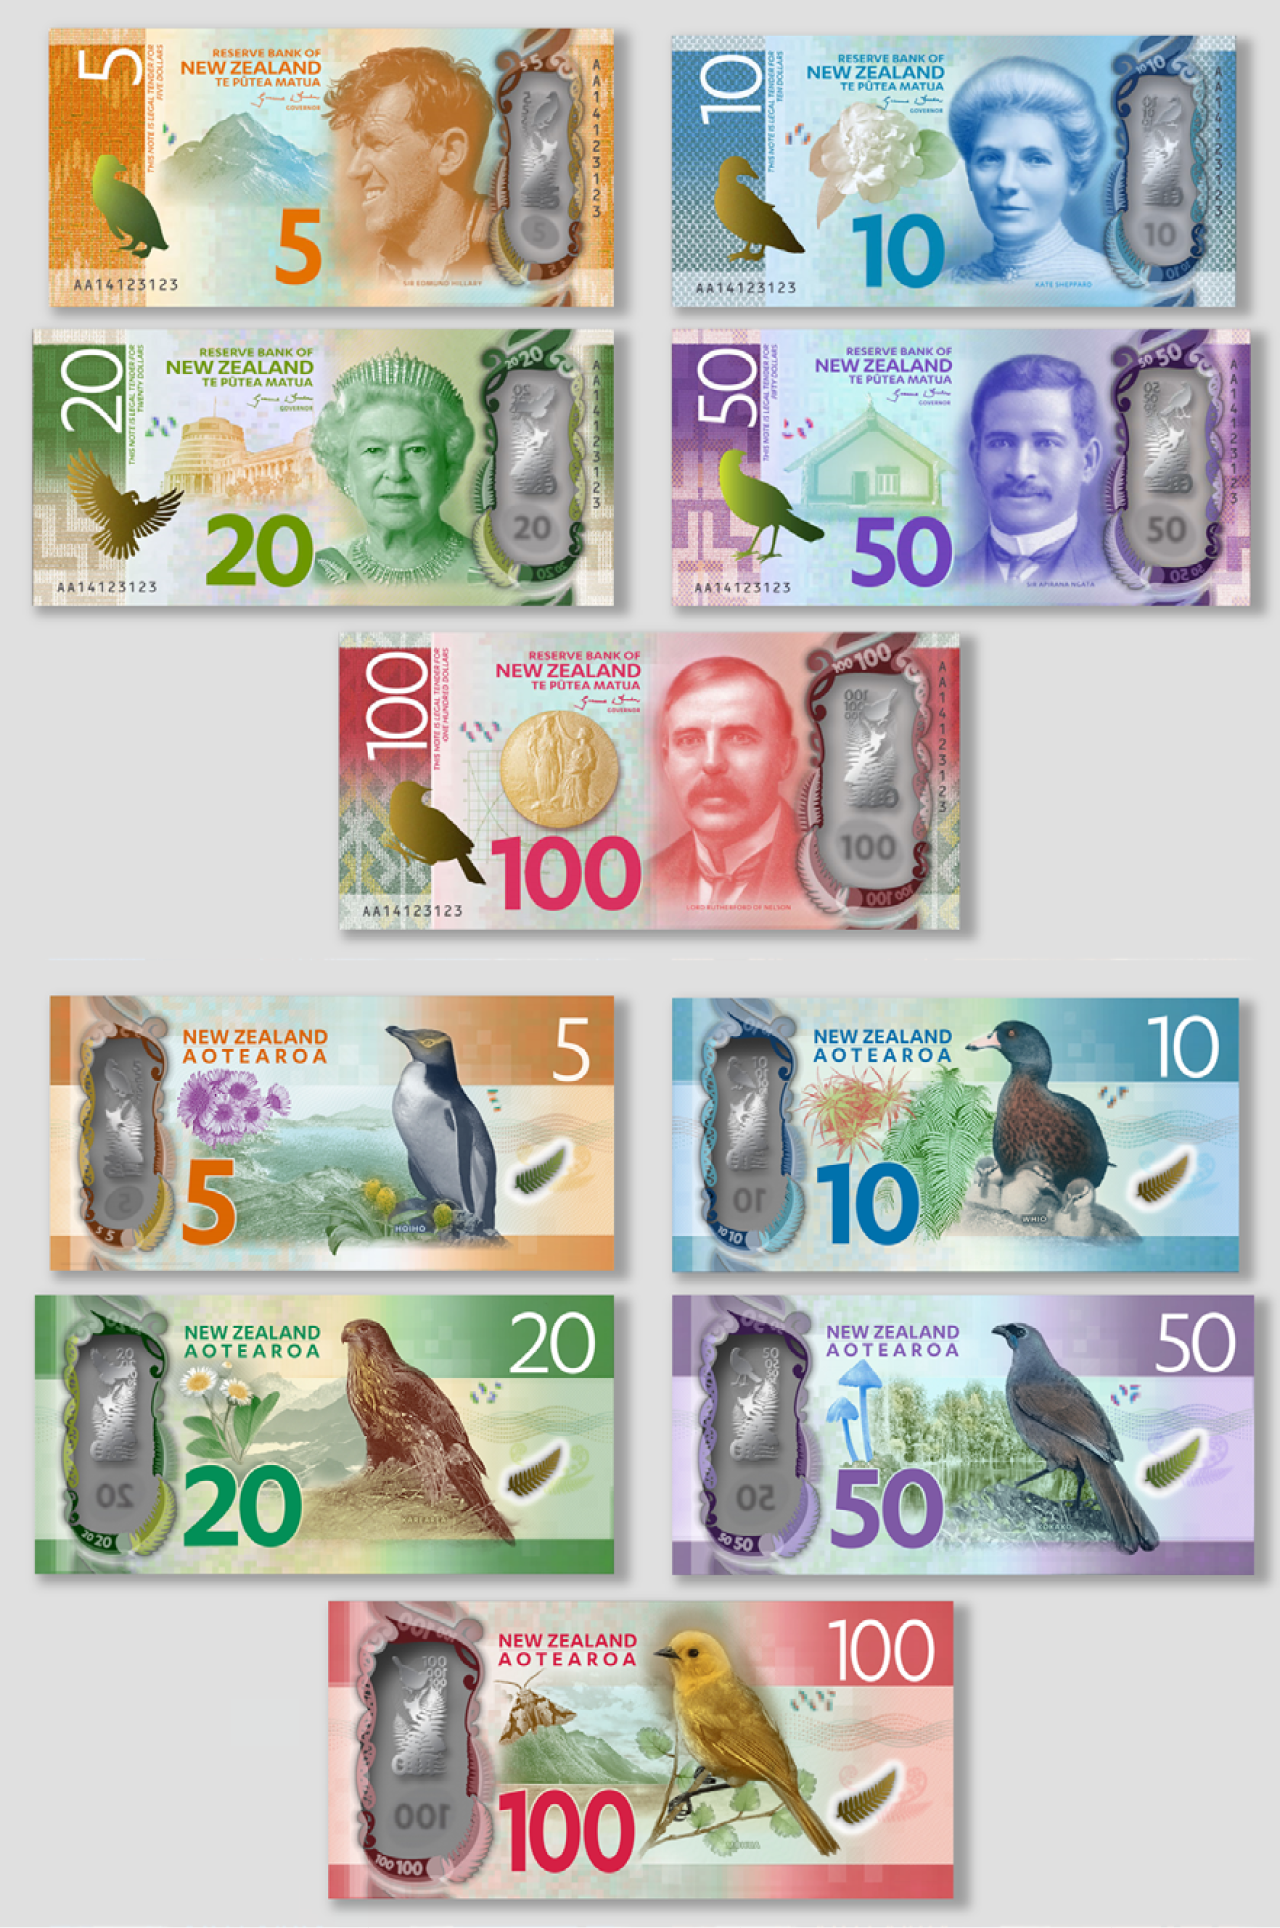 Preliminary Designs As Published By The Reserve Bank Of New Zealand In Bulletin Vol